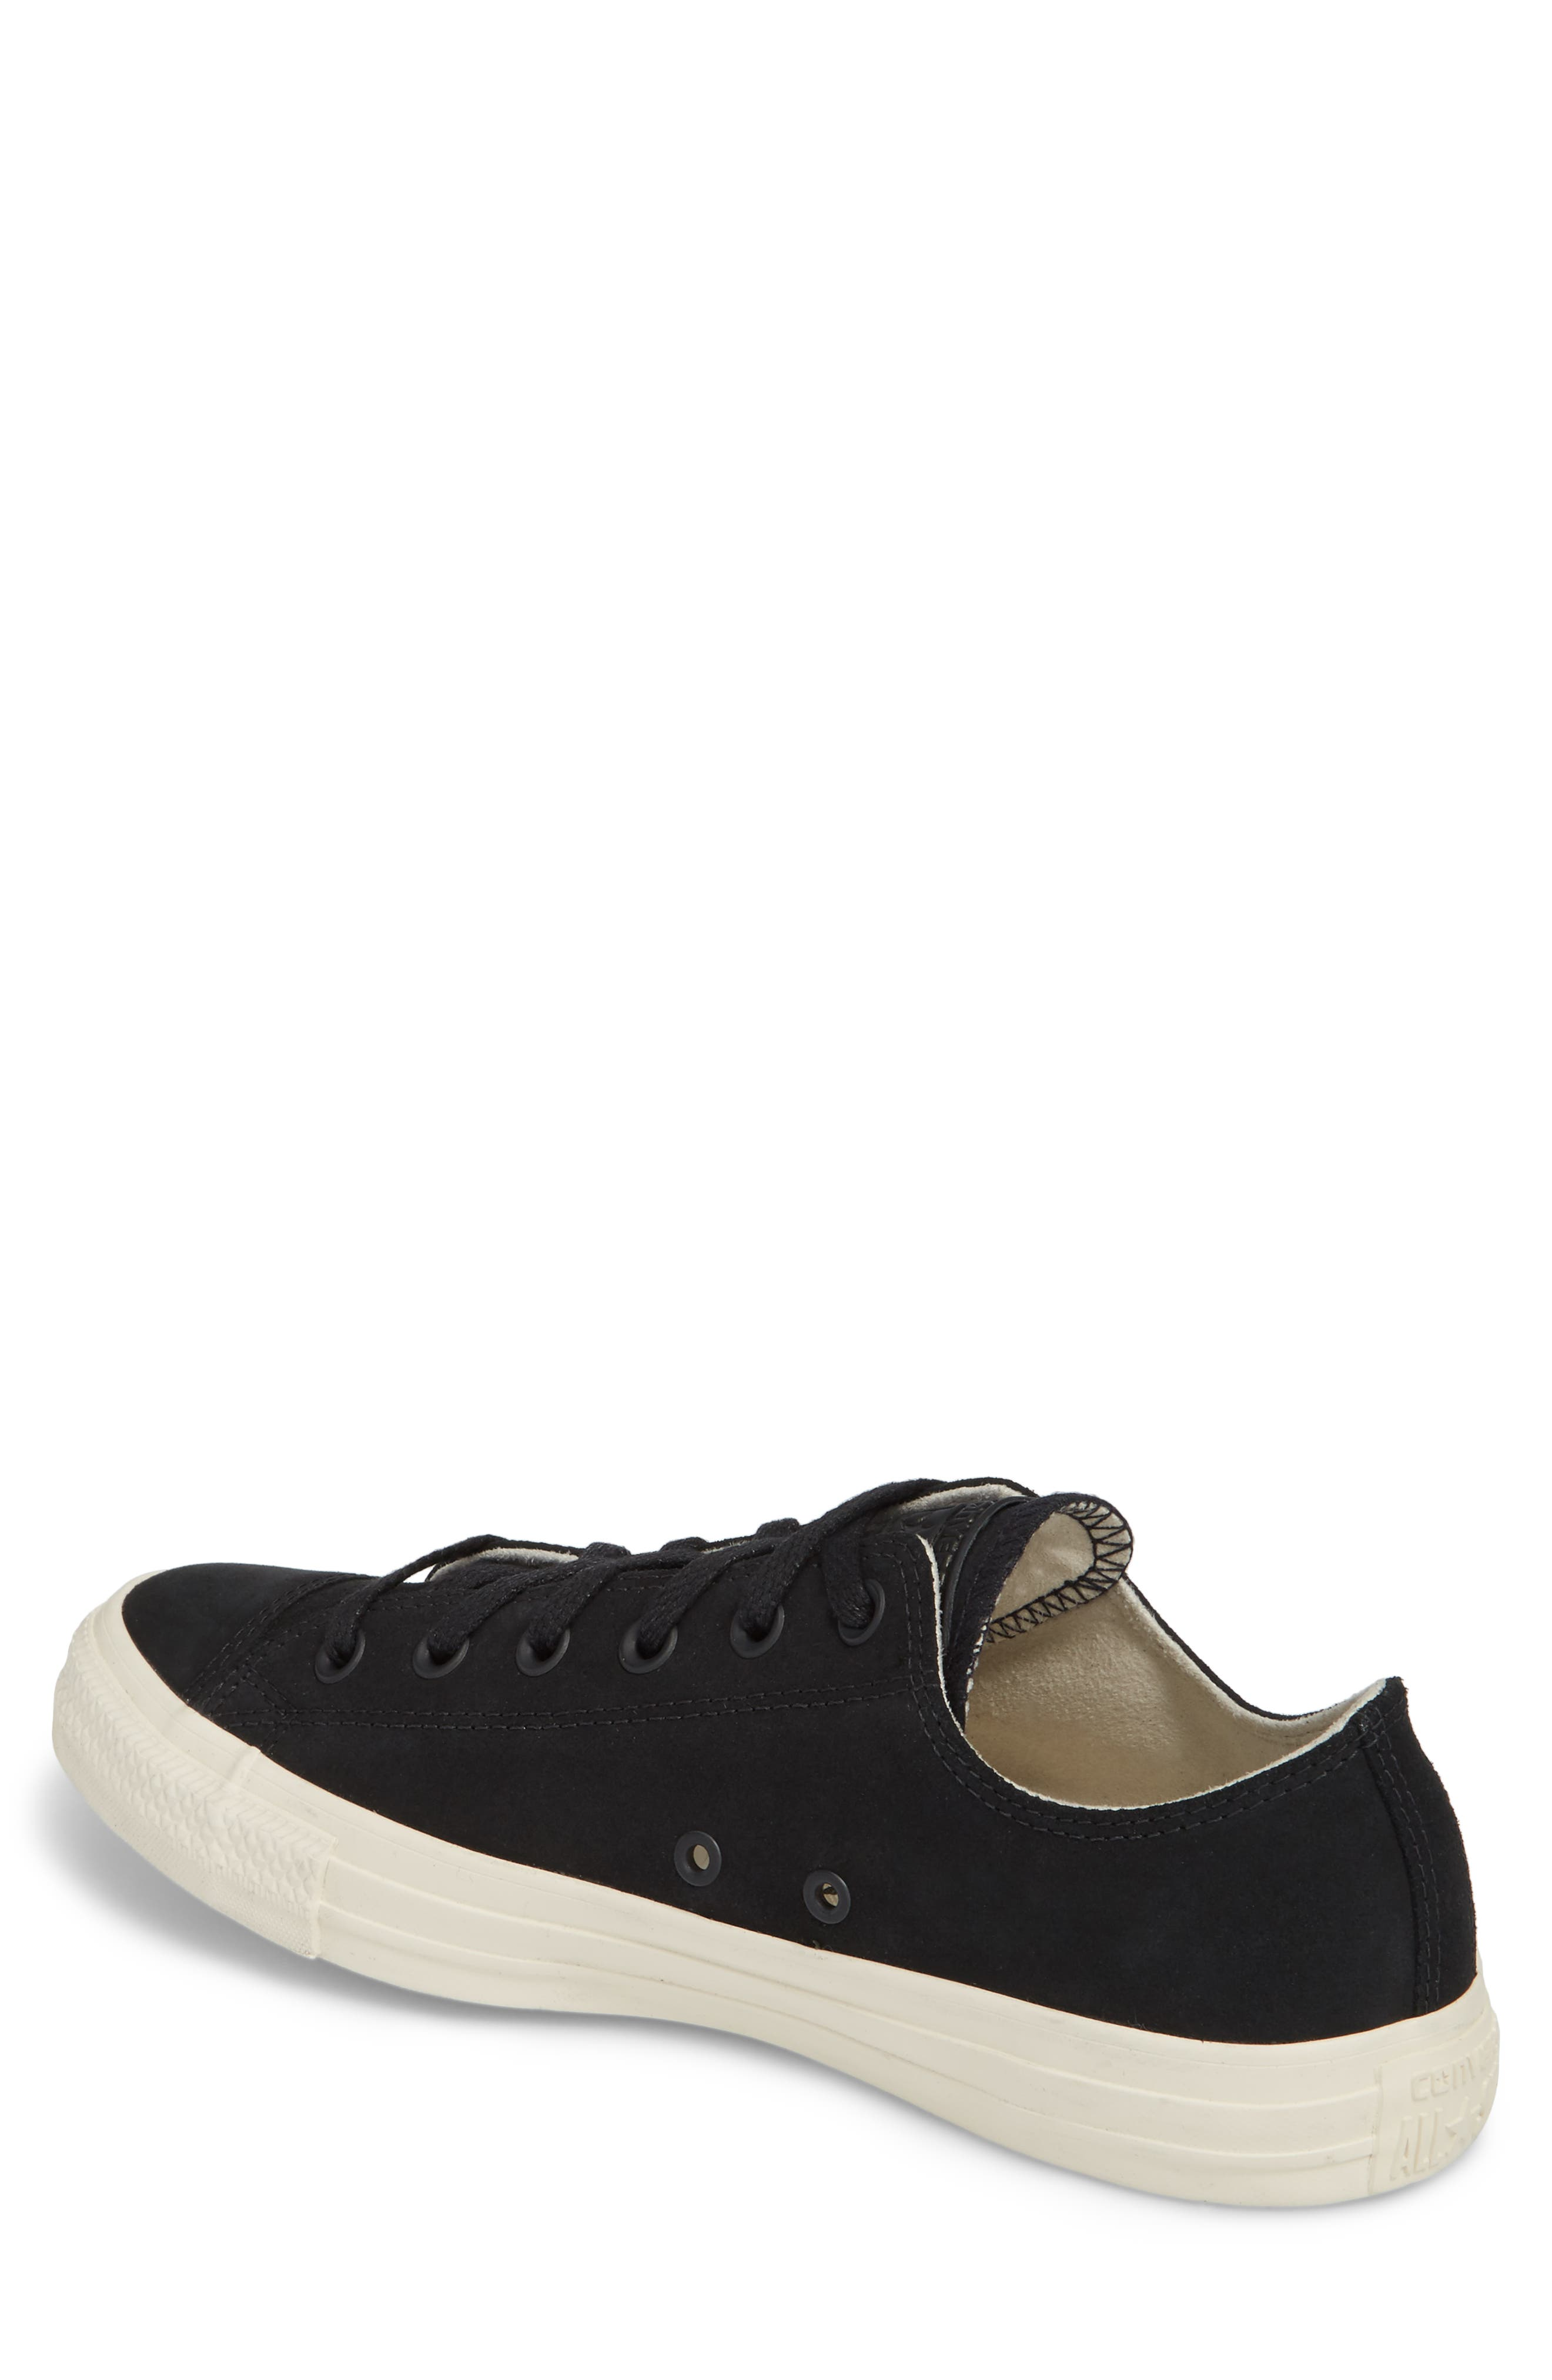 Chuck Taylor<sup>®</sup> All Star<sup>®</sup> Low Top Sneaker,                             Alternate thumbnail 2, color,                             Black Leather